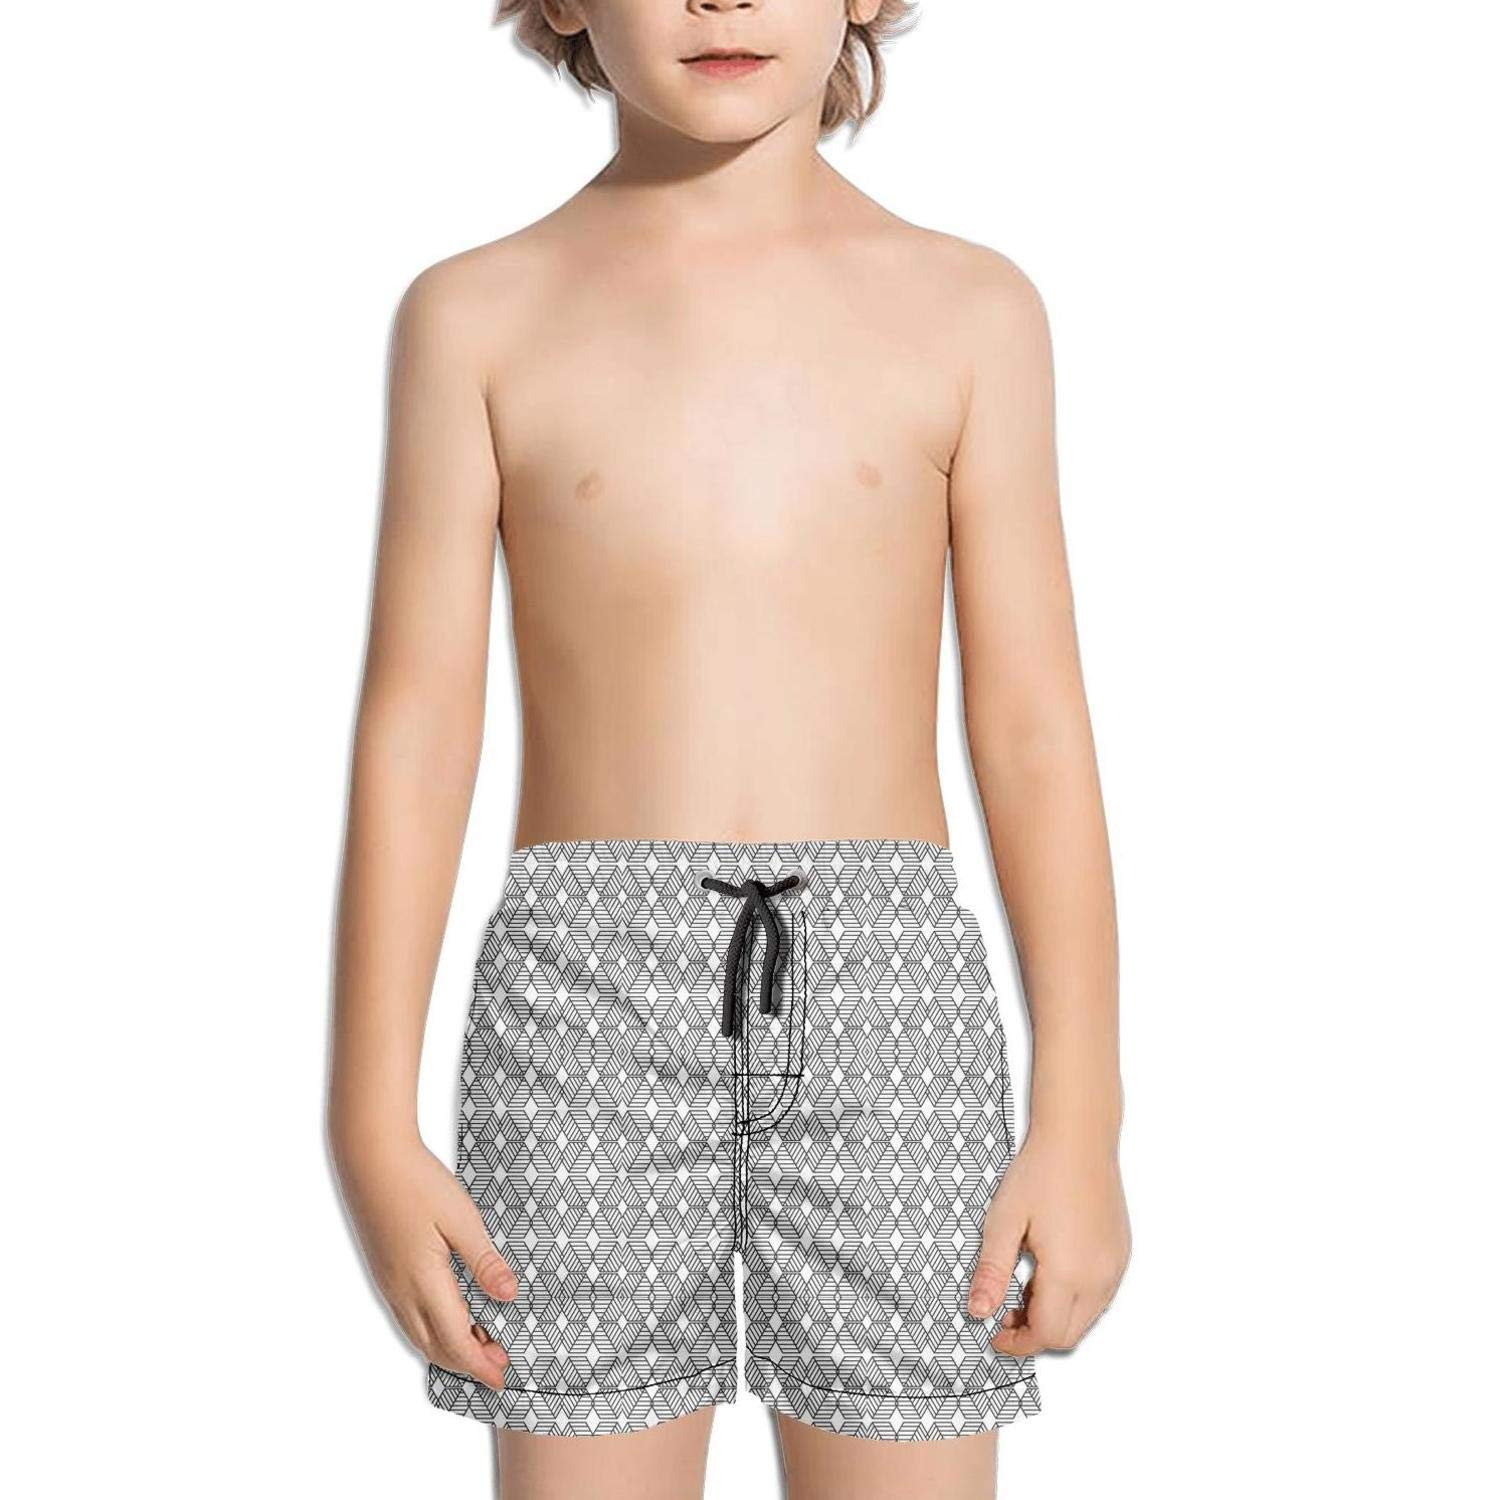 Stylish Geometric Graphic Black and White Fashion Swim Trunks BingGuiC Boys Quick Dry Shorts